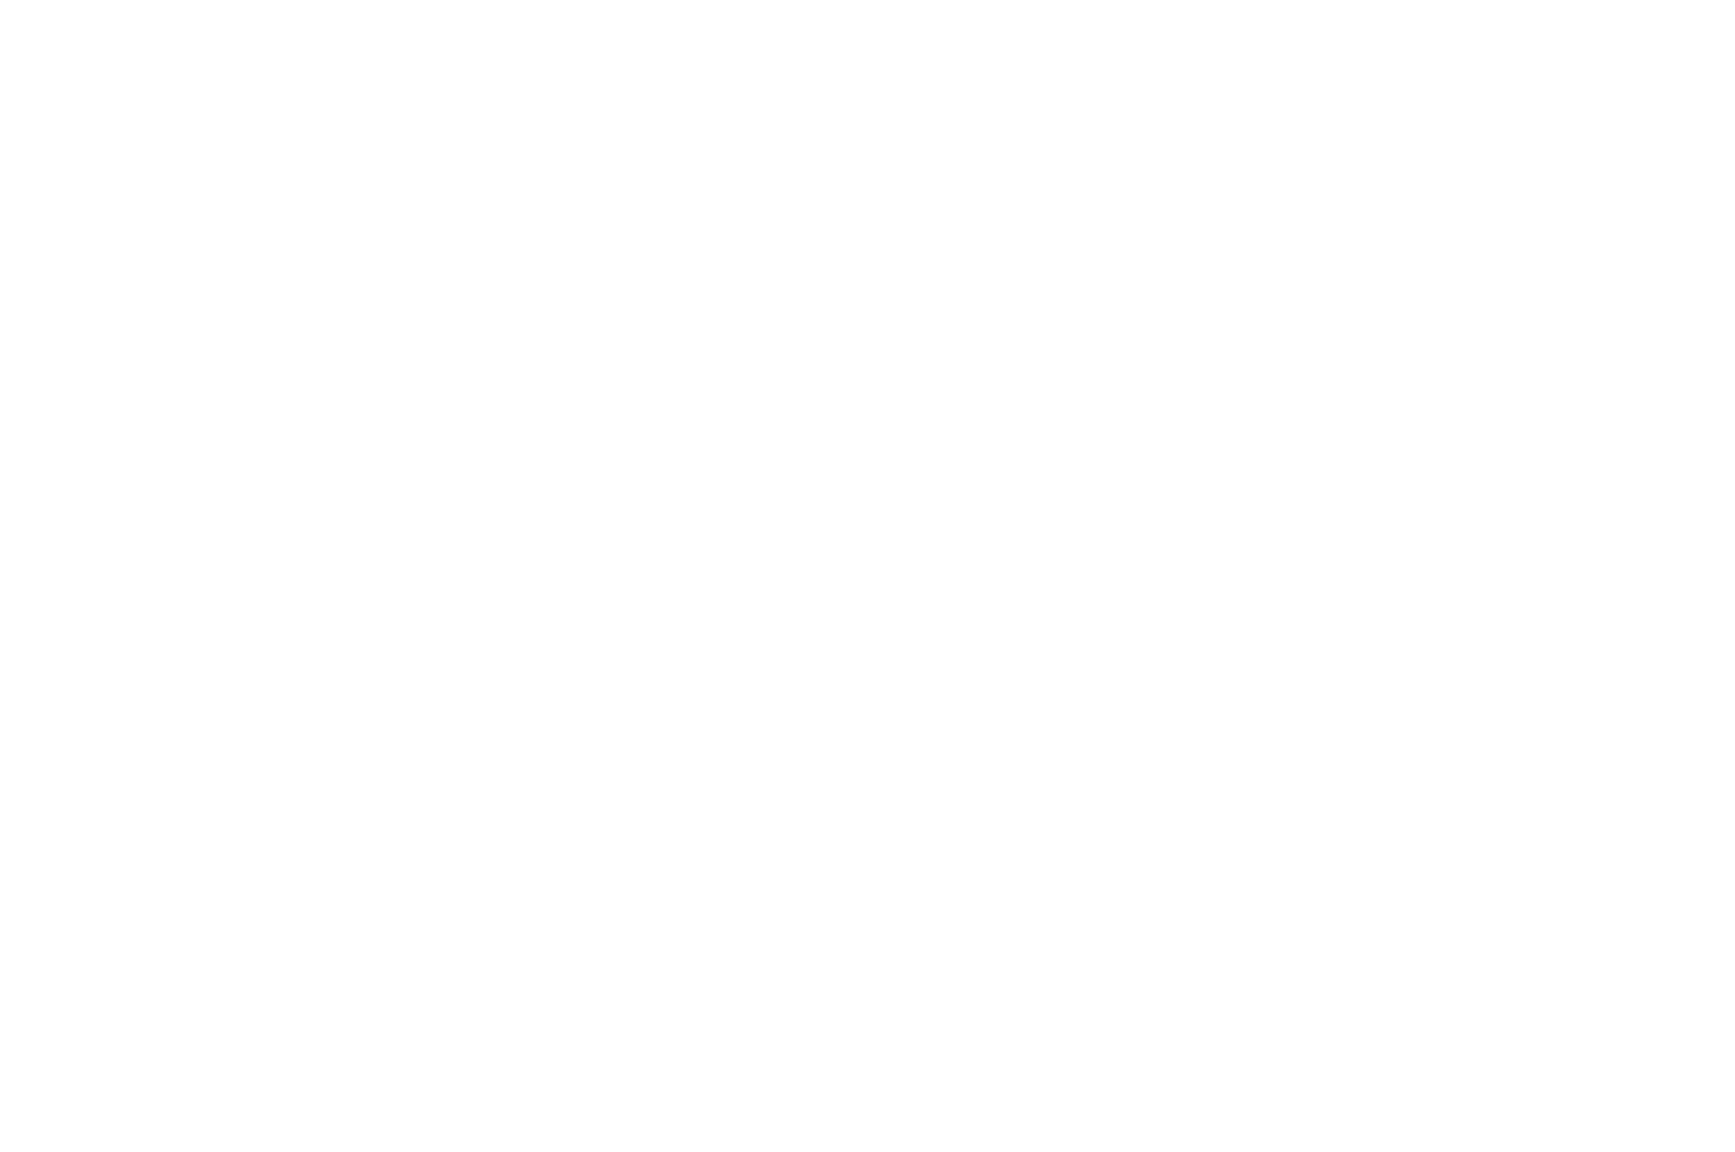 AWARD WINNER - International Independent Film Awards - Fall Session - 2018 (1).png